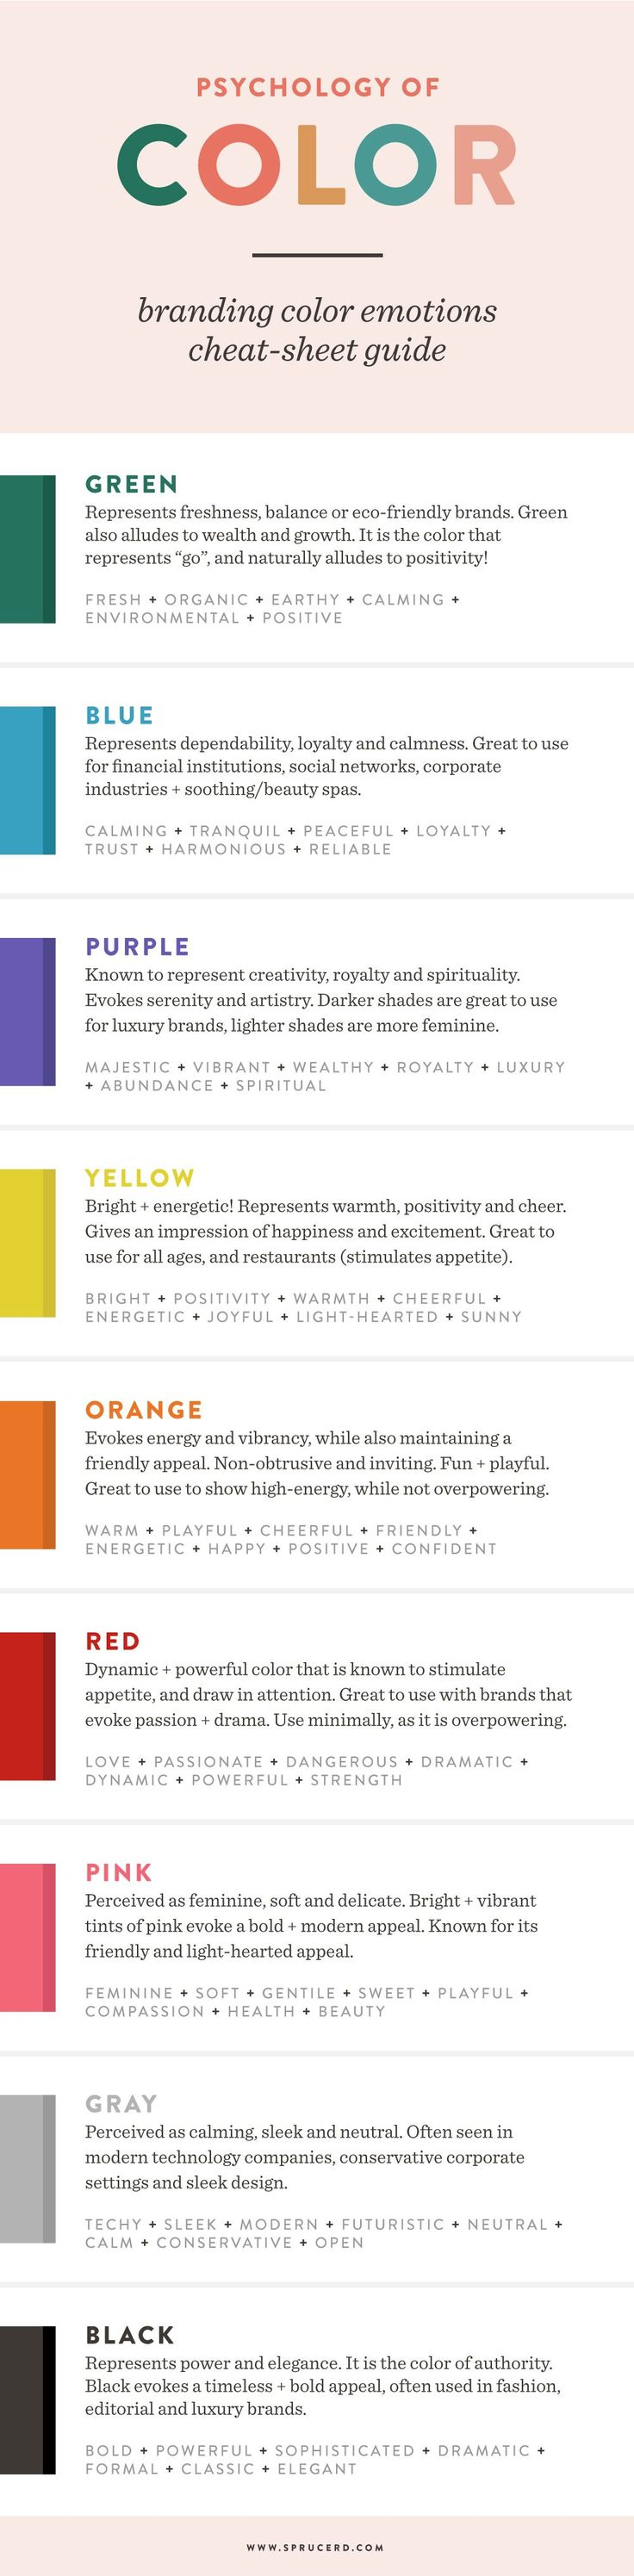 How to Use Colour Psychology to Create a Winning Website #Infographic #WebDesign